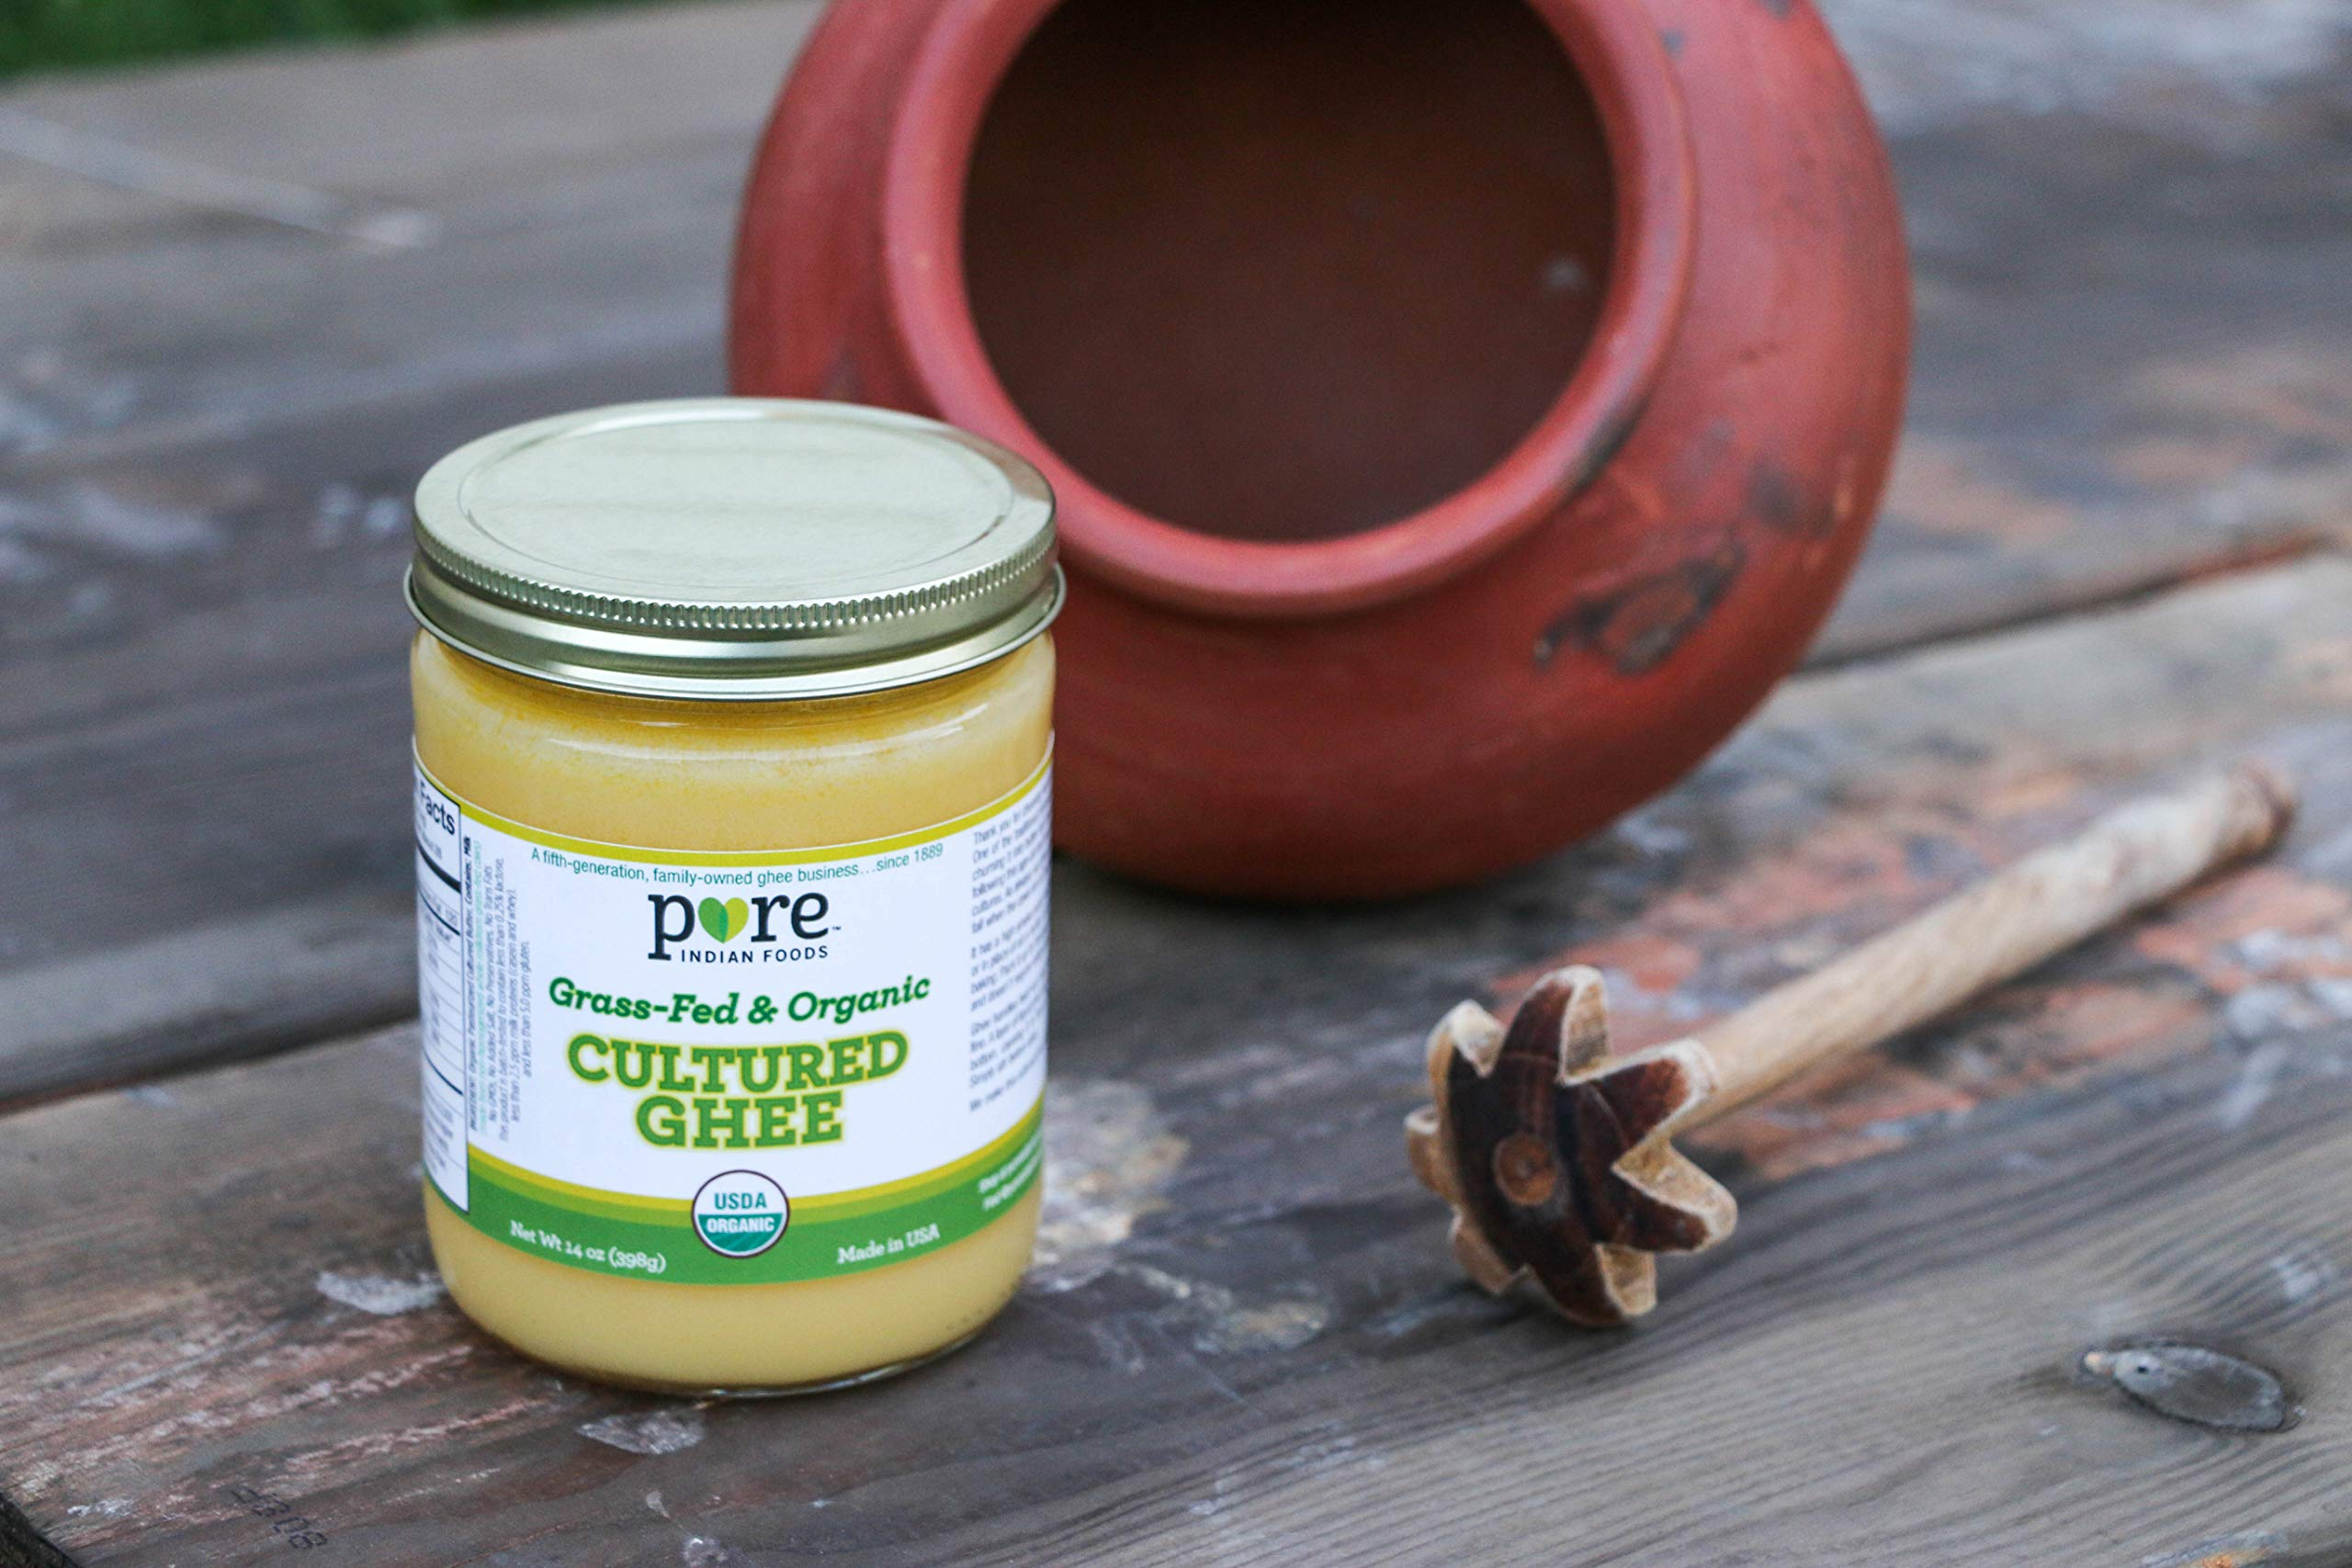 Grassfed Organic Cultured Ghee 14 oz (2-Pack) by Pure Indian Foods (Image #2)